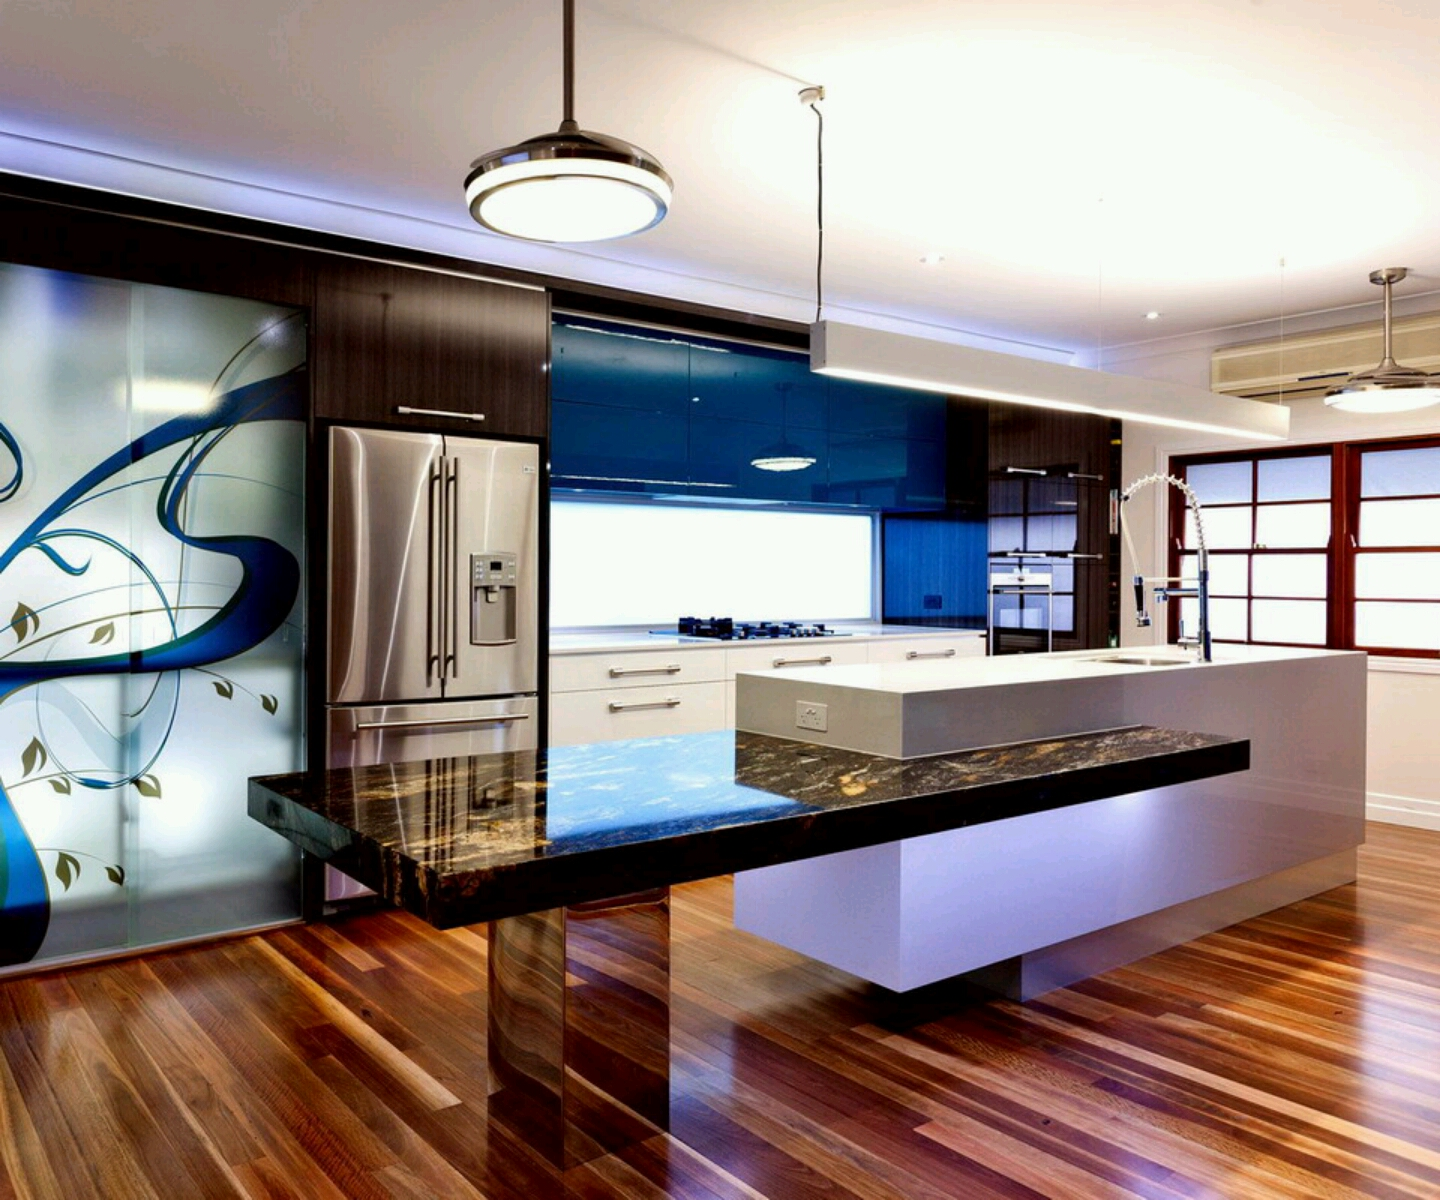 Ultra modern kitchen designs ideas - Interior design kitchen ...